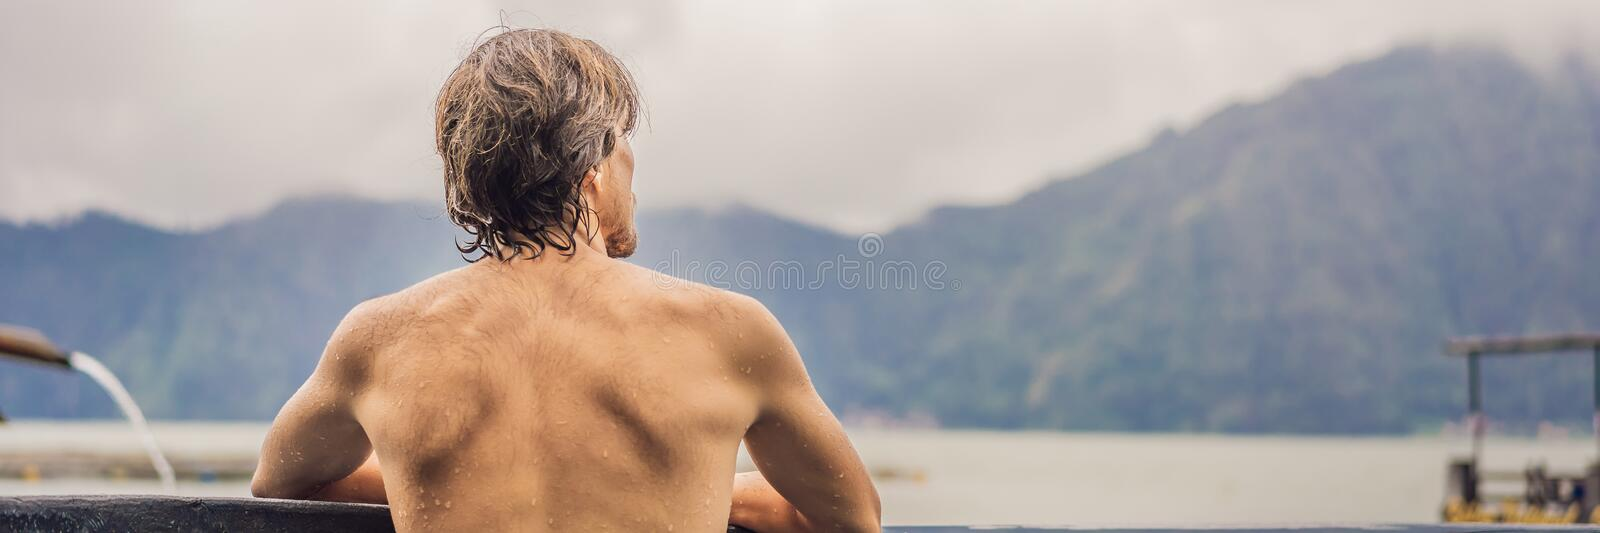 Geothermal spa. Man relaxing in hot spring pool. Young man enjoying bathing relaxed in a blue water lagoon, tourist royalty free stock images